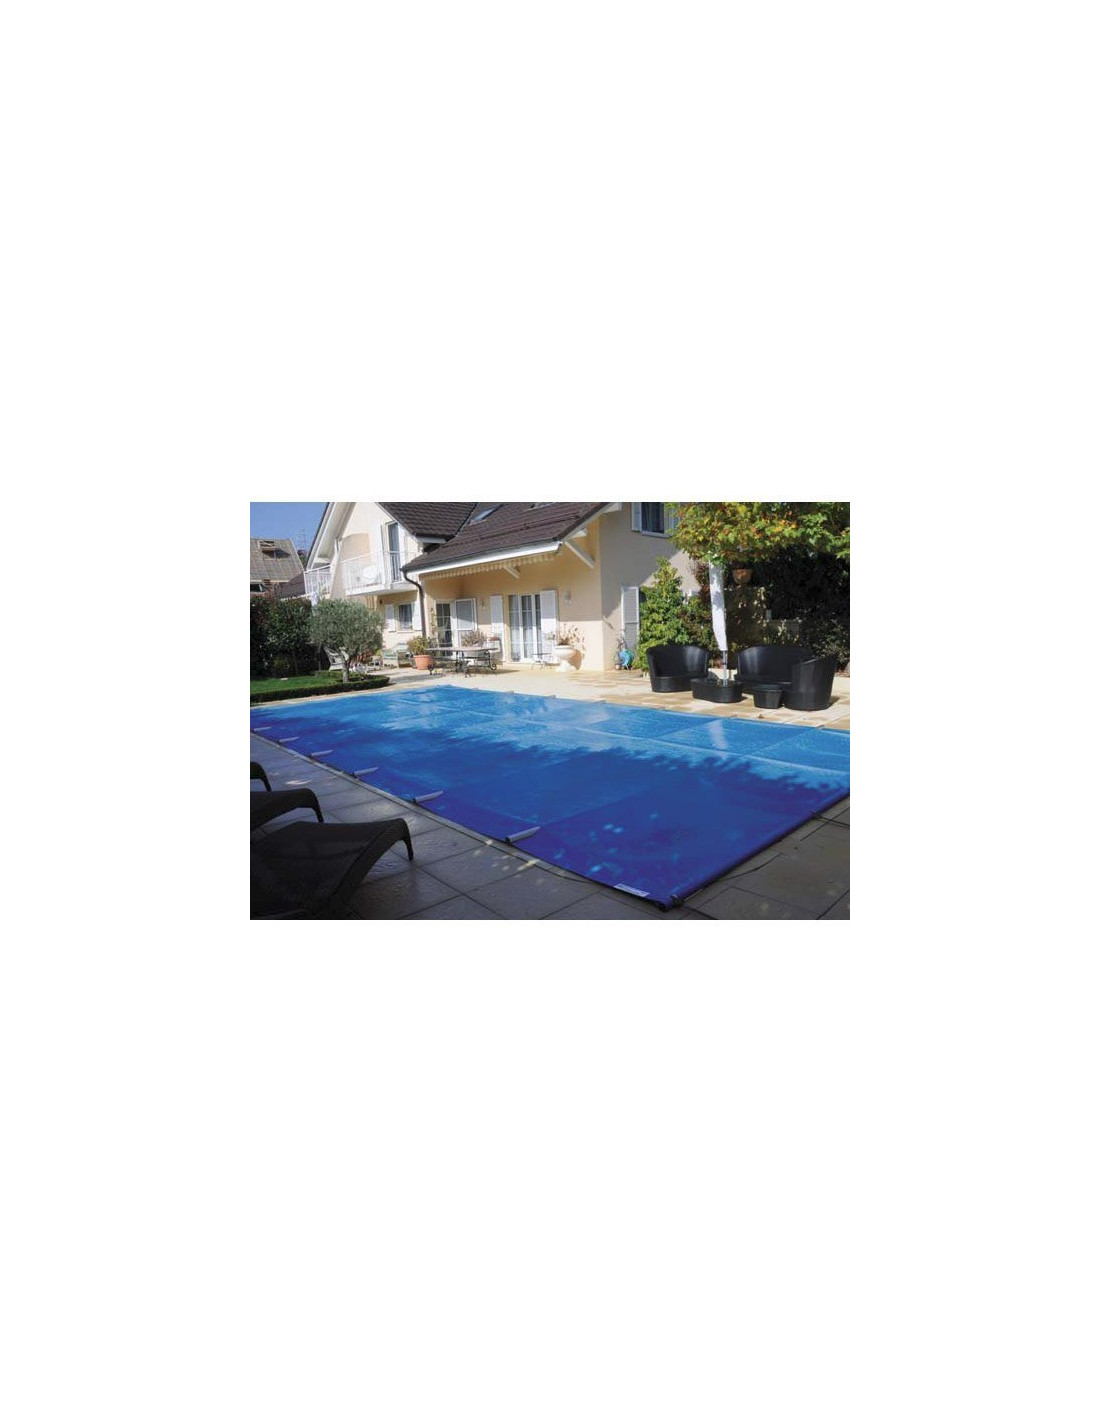 B che barre piscine for Bache piscine